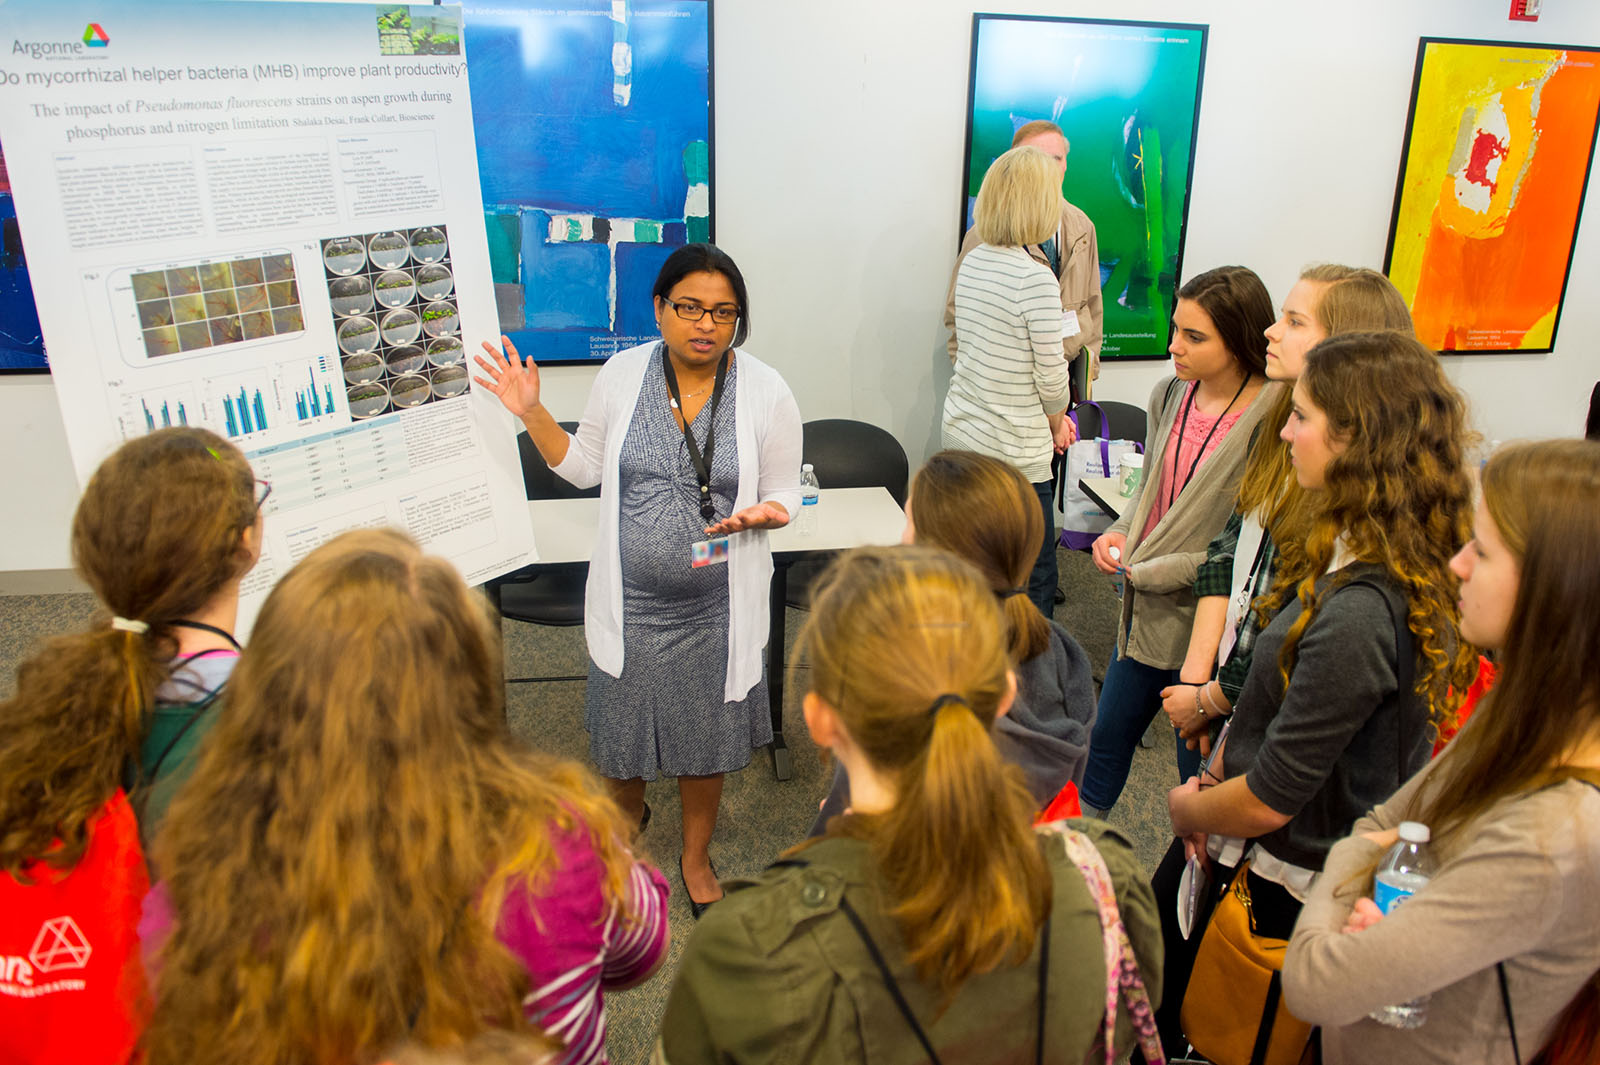 Argonne postdoctoral fellow Shalaka Desai explains her research to Chicago-area high school girls visiting Argonne as part of Science Careers in Search of Women, an annual one-day Science conference to explore careers in science, technology, engineering and math.